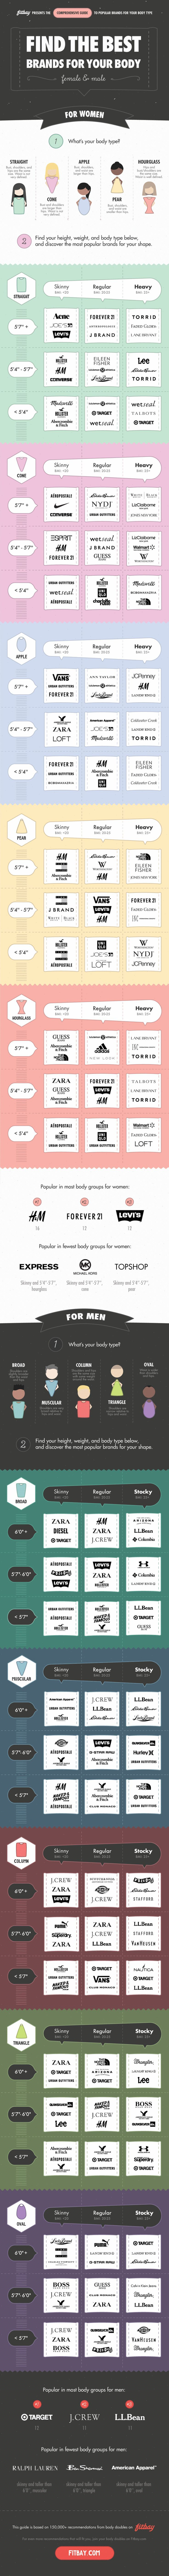 types of skills list%0A This Graphic Recommends the Best Clothing Brands for Your Body Type